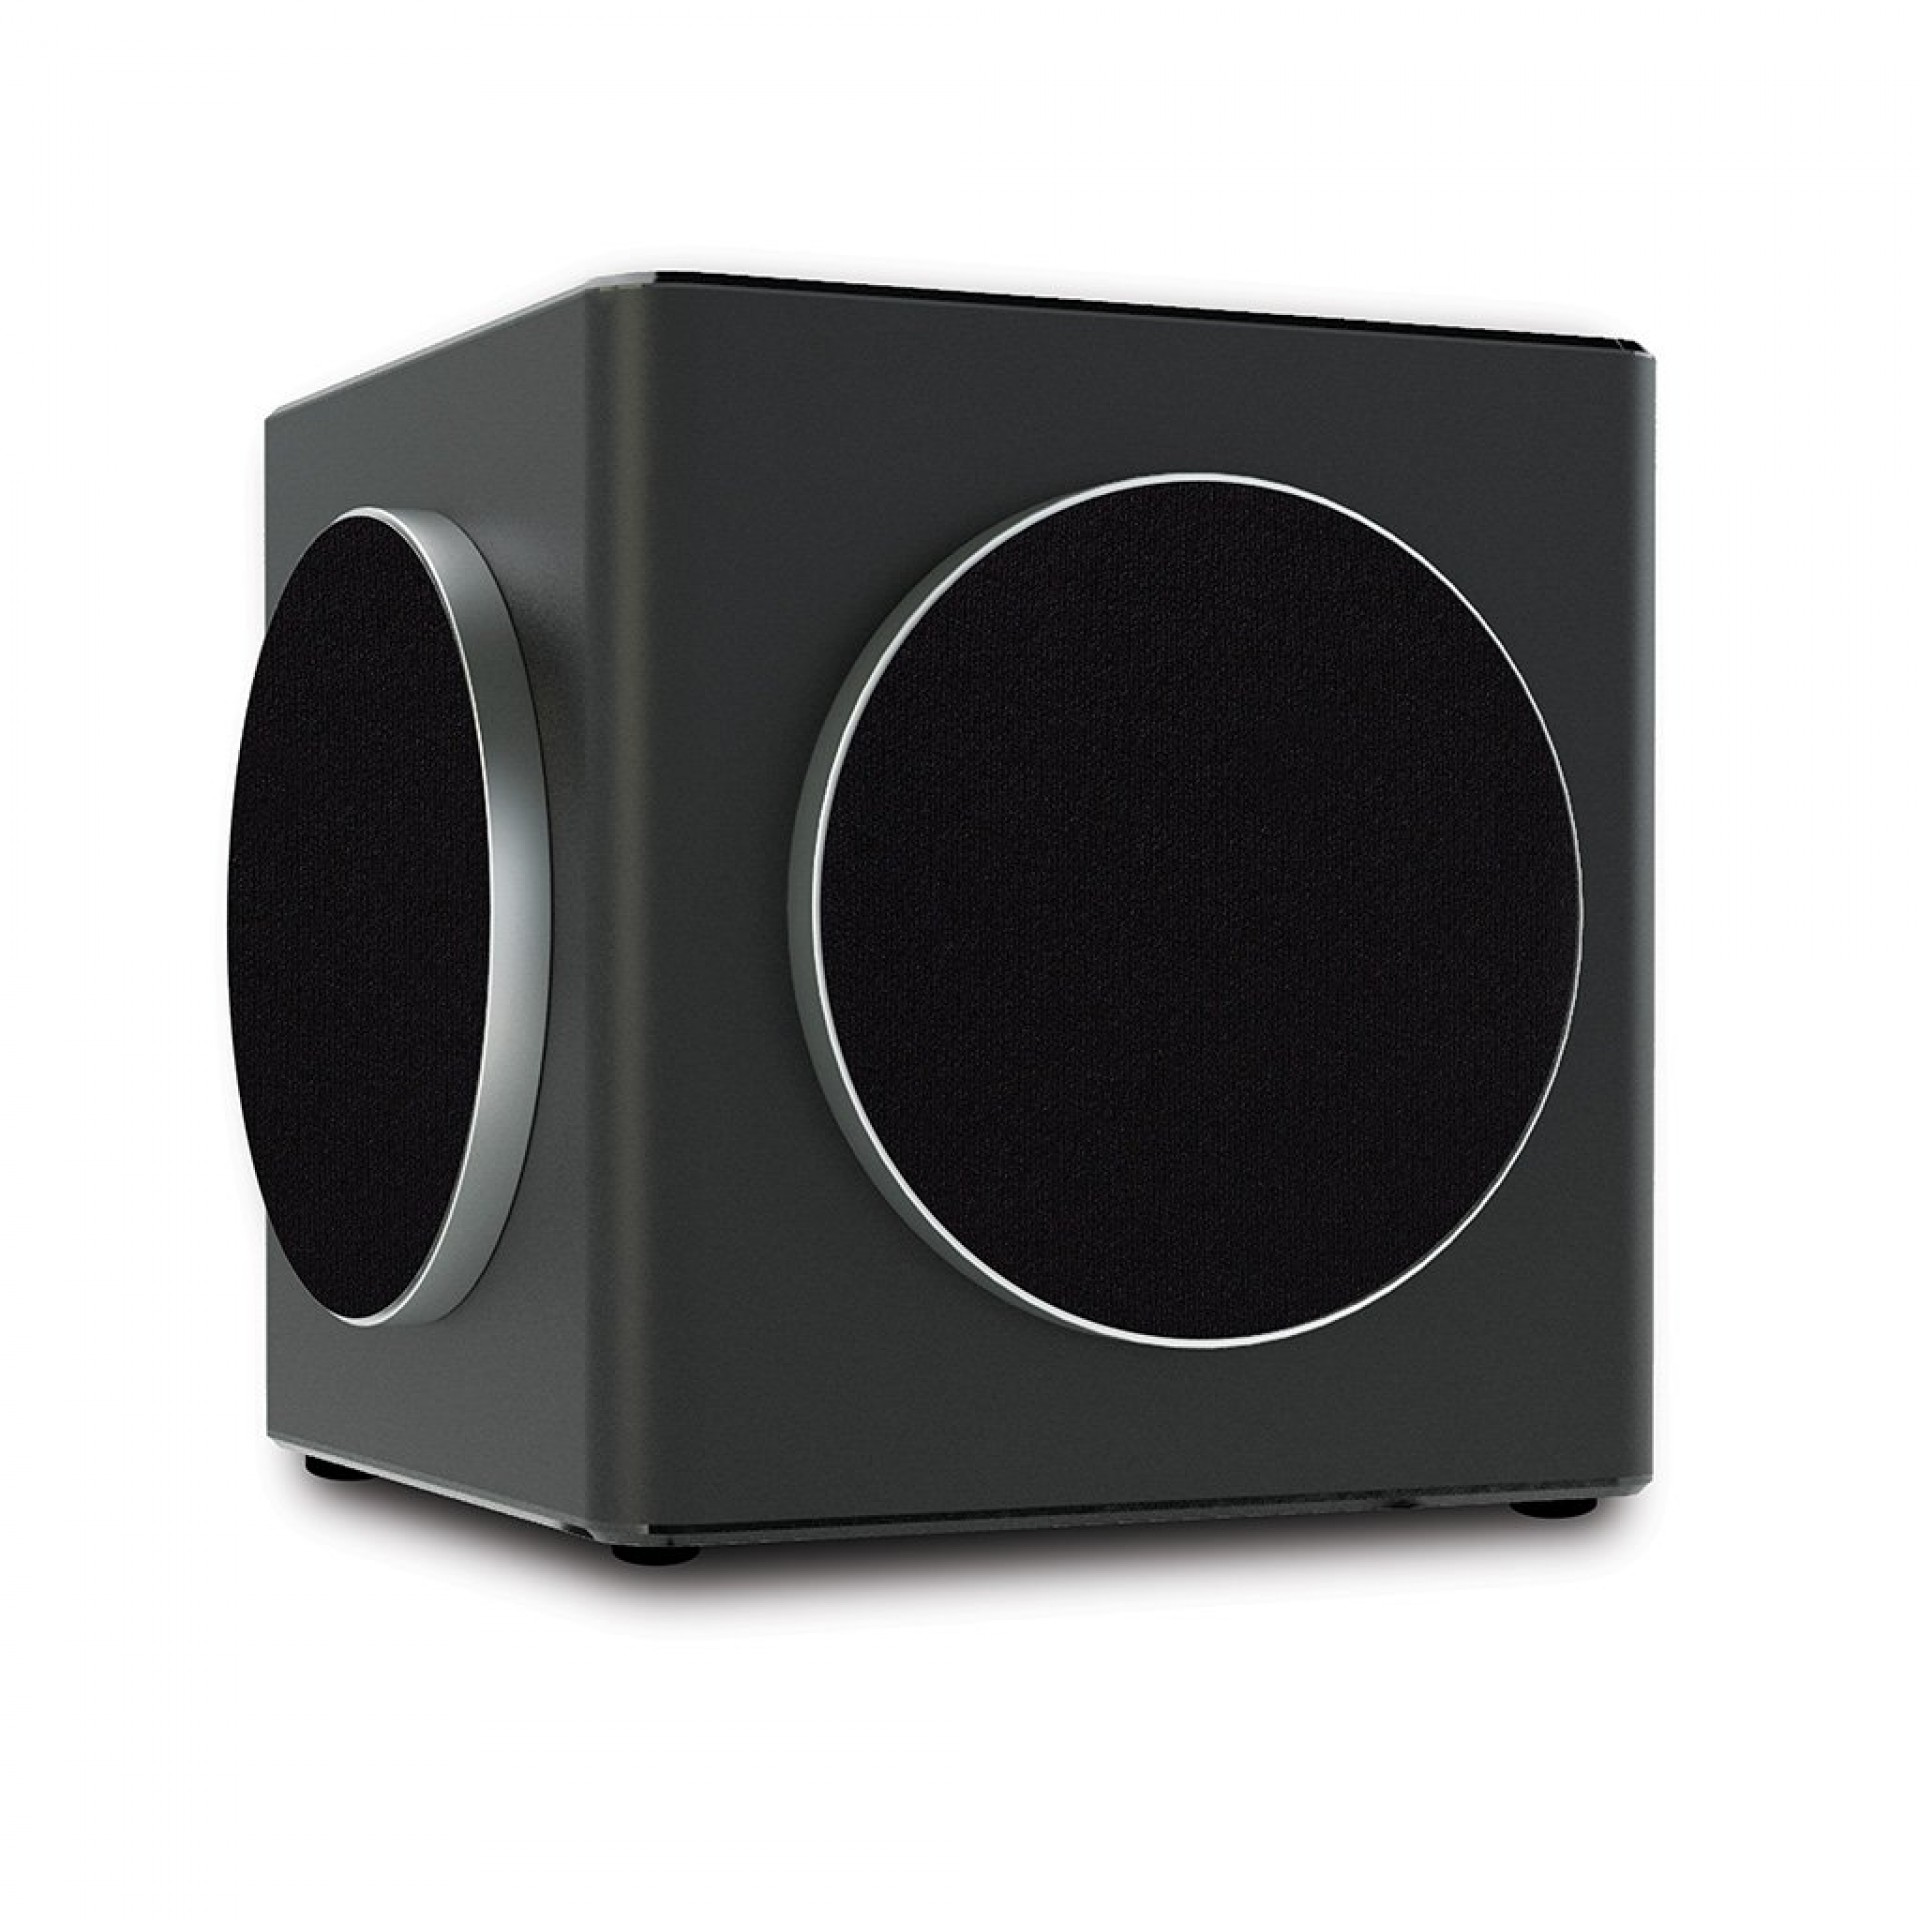 ELECTROCOMPANIET SIRA L-1 Subwoofer